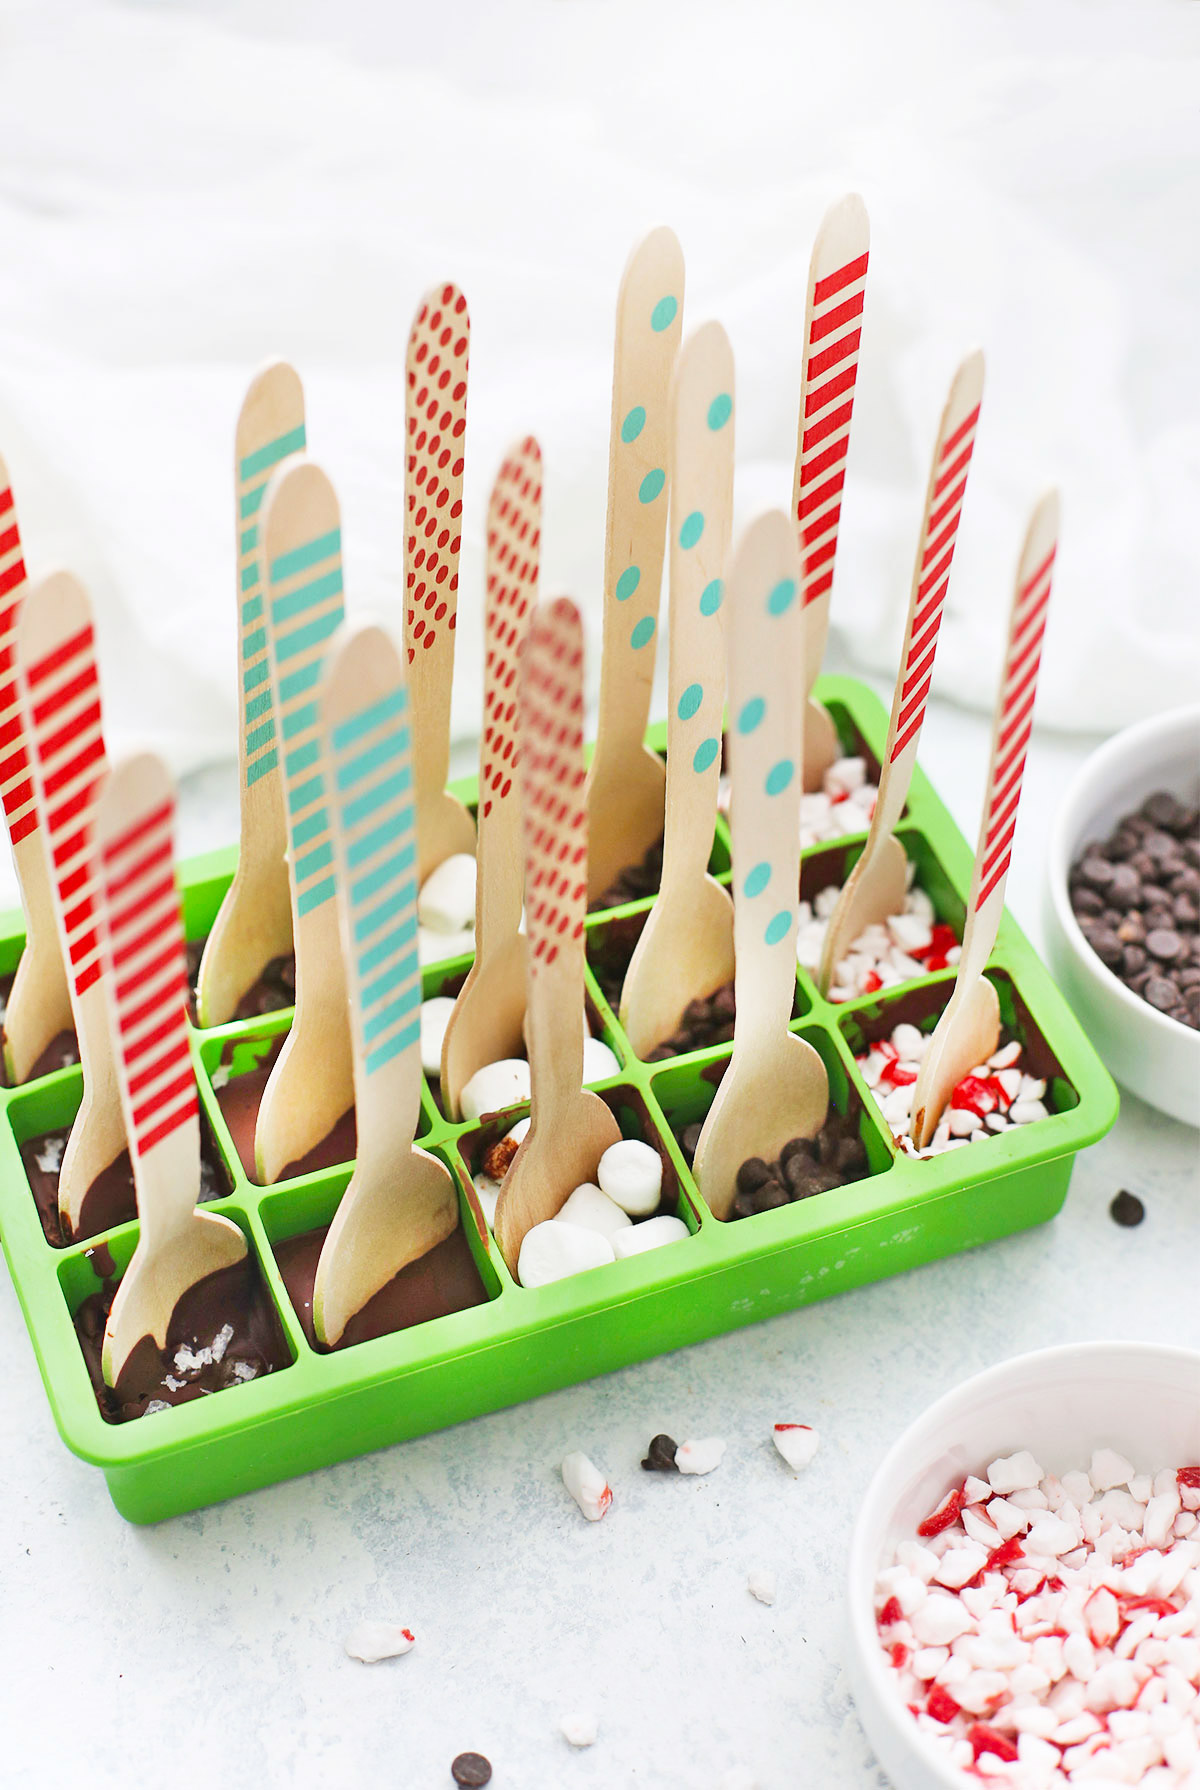 Dairy free, vegan, paleo hot chocolate spoons setting in a silicone ice cube mold